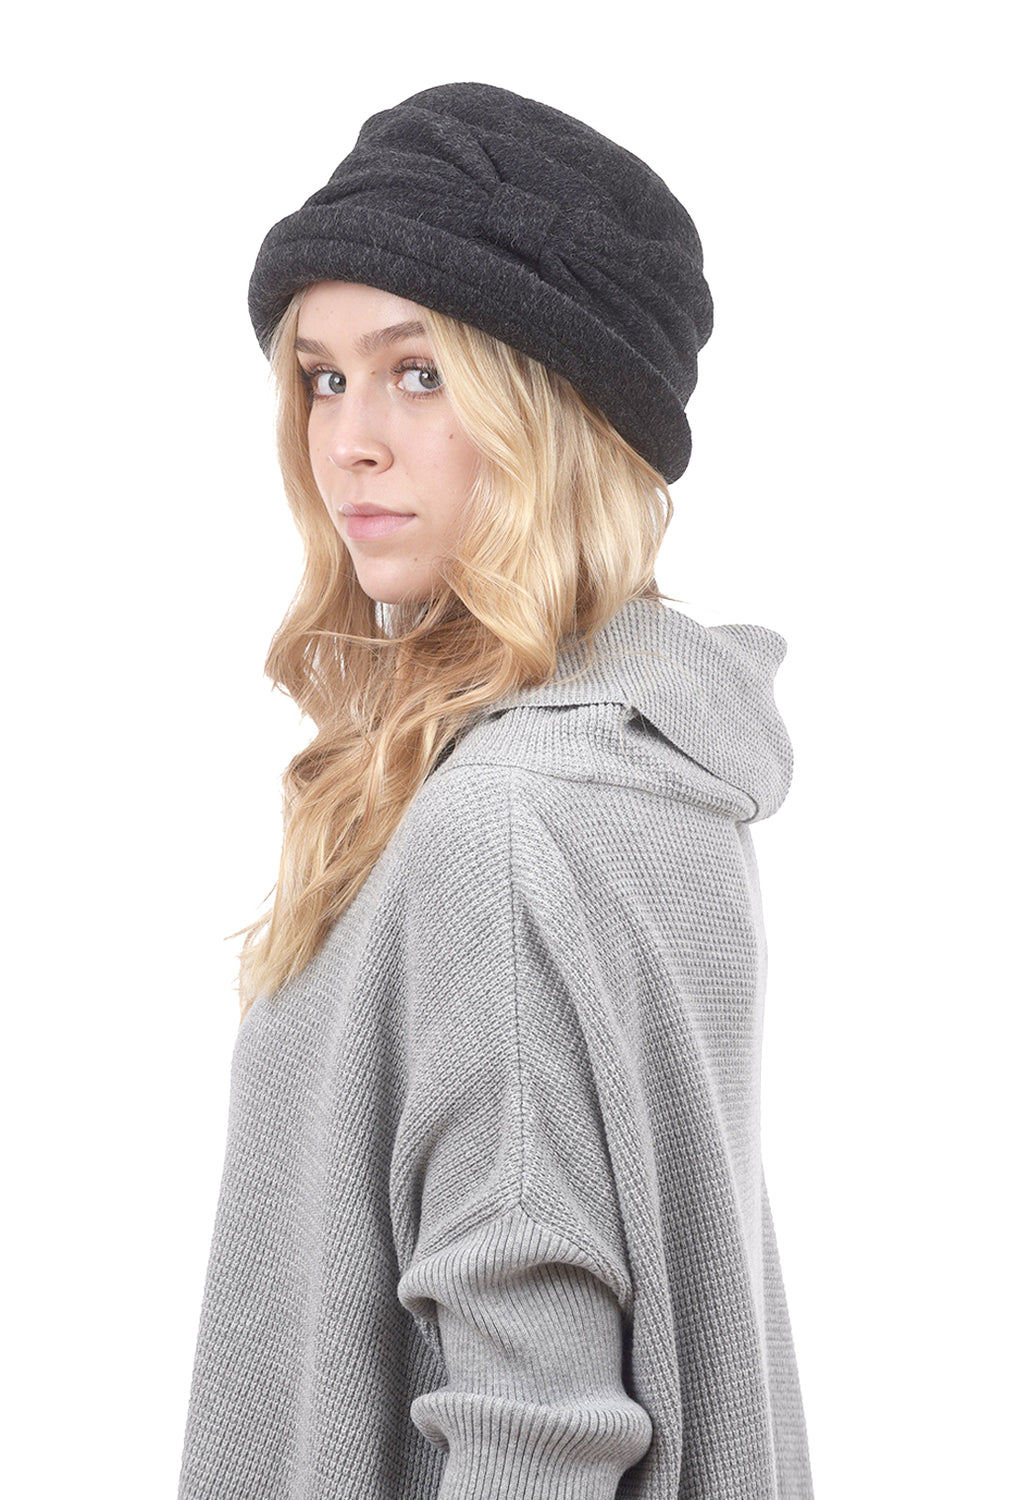 Lillie & Cohoe Hats Mohair Jeanette Hat, Charcoal